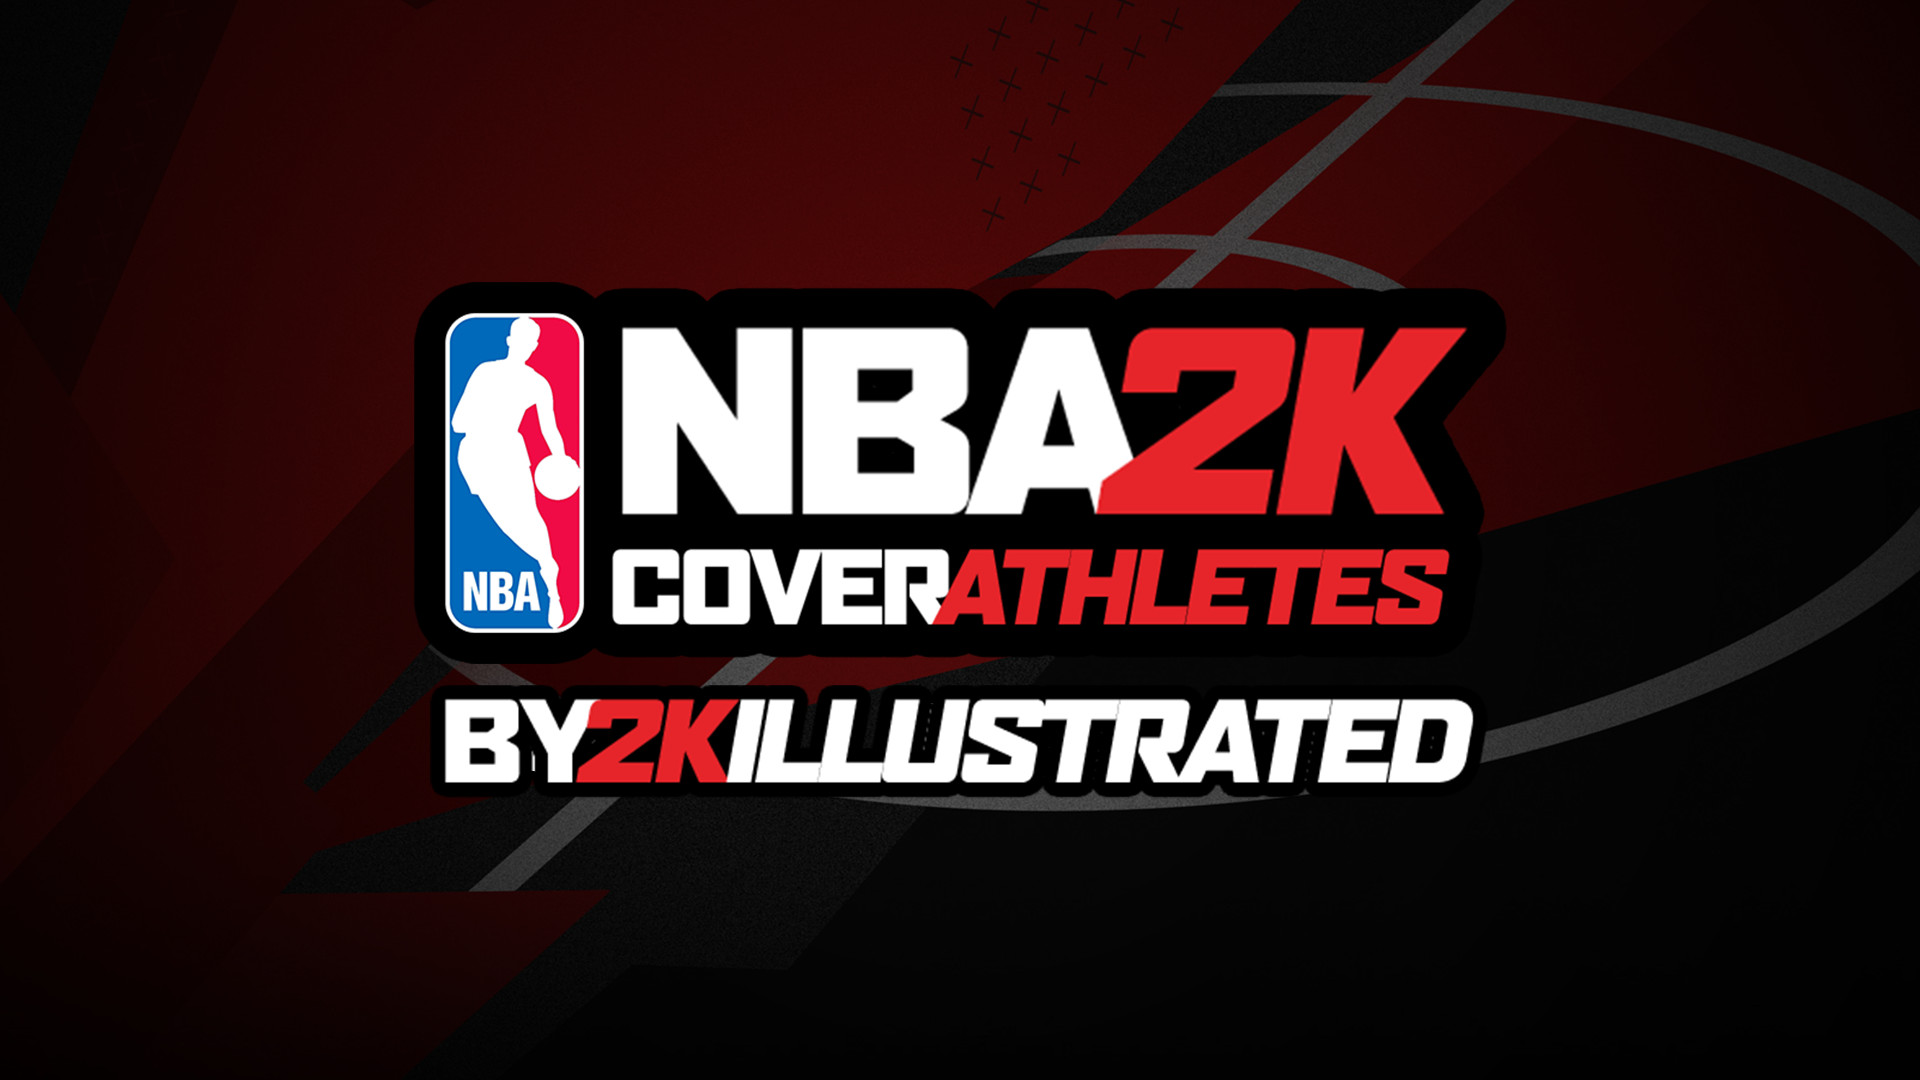 Nba 2k18 Cover Template Nba 2k19 Cover athletes Collection forums 2kmtcentral